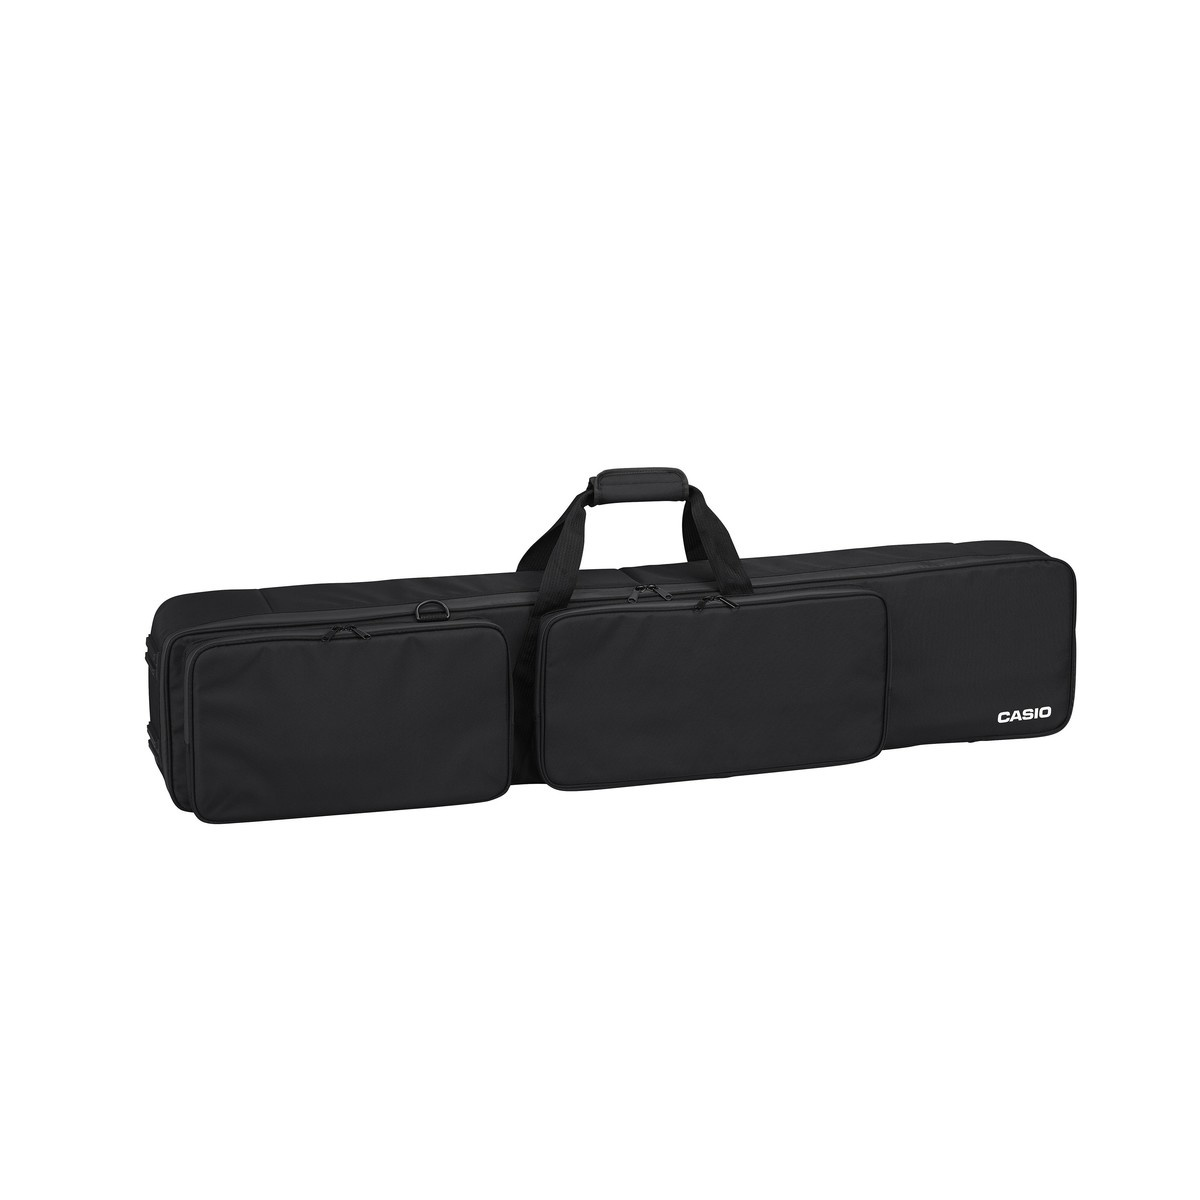 Casio SC-800P Deluxe carry bag for casio PX-S1000 & 3000